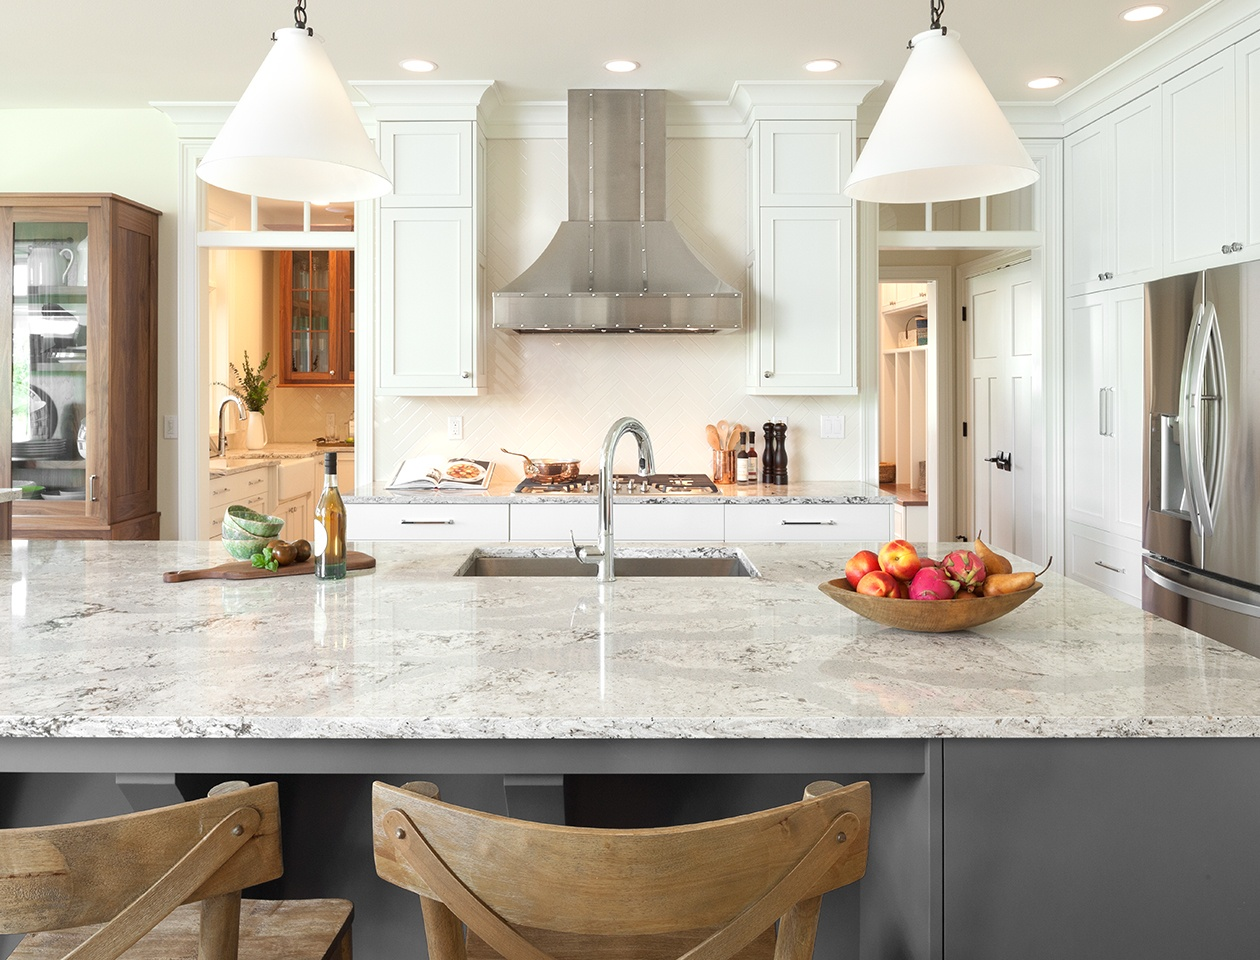 The Different Types Of Quartz Countertops And How To Care For Quartz Countertops